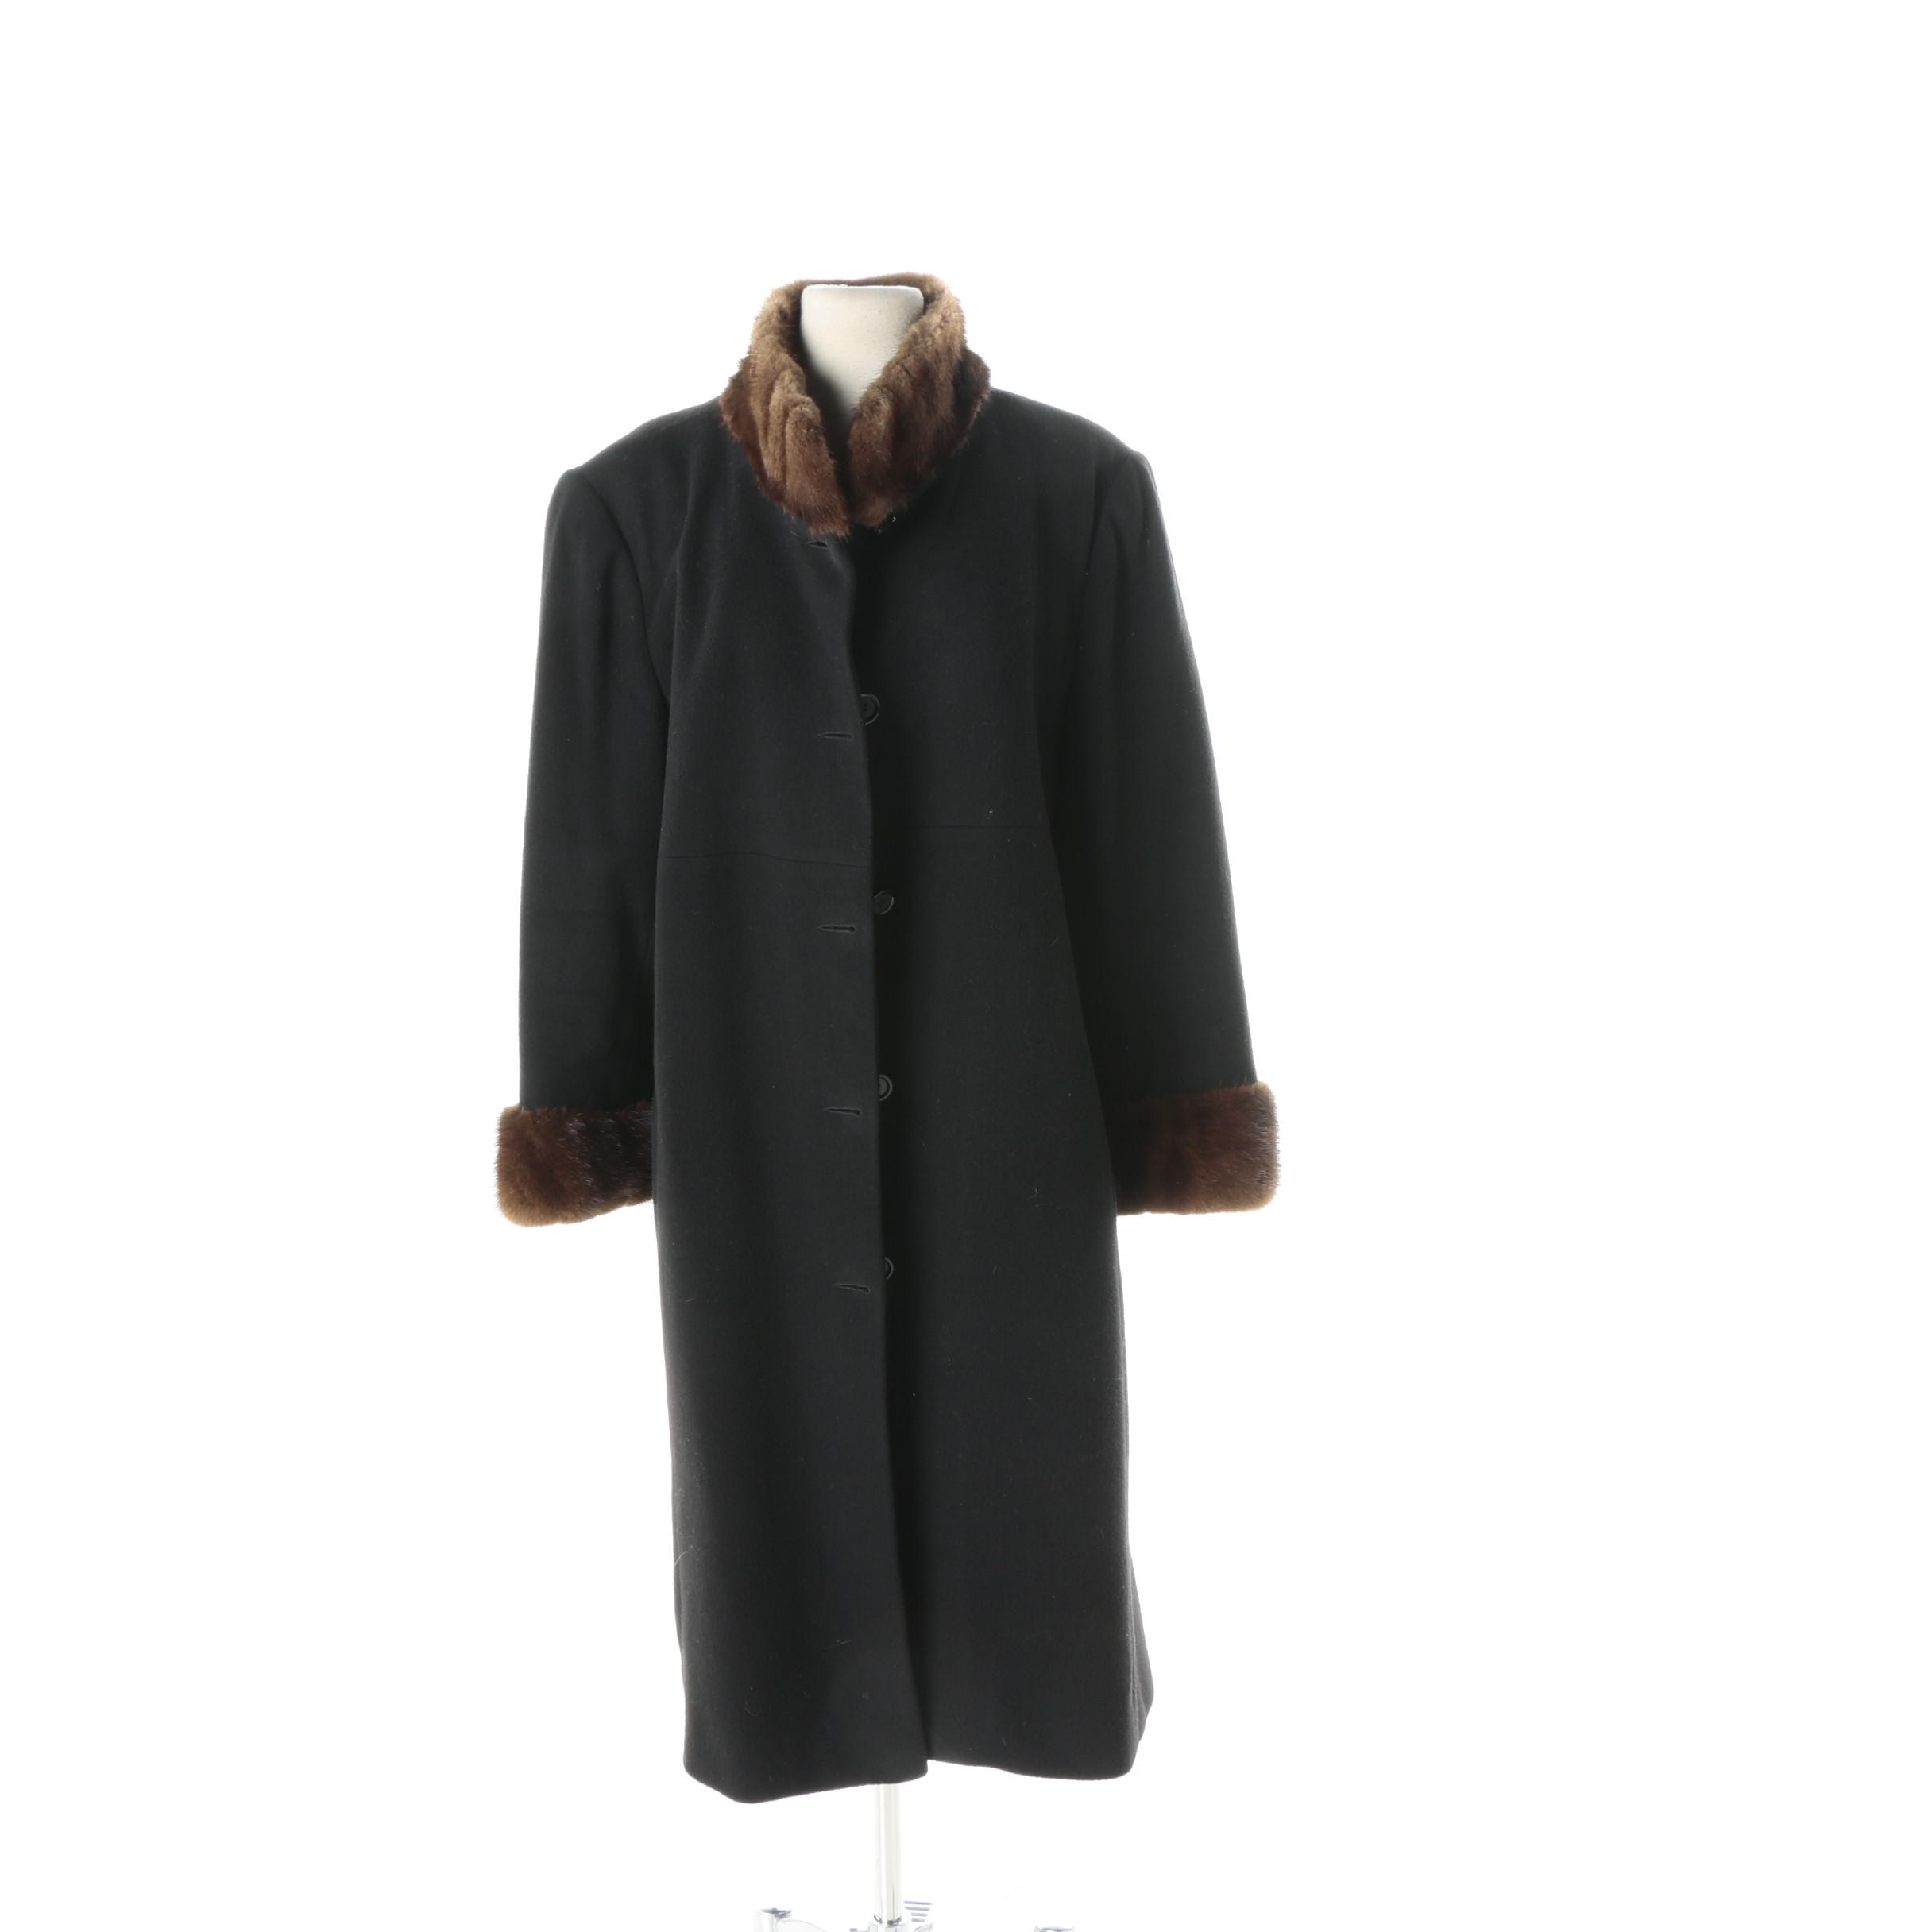 Vintage Marvin Richards Coat with Mink Fur